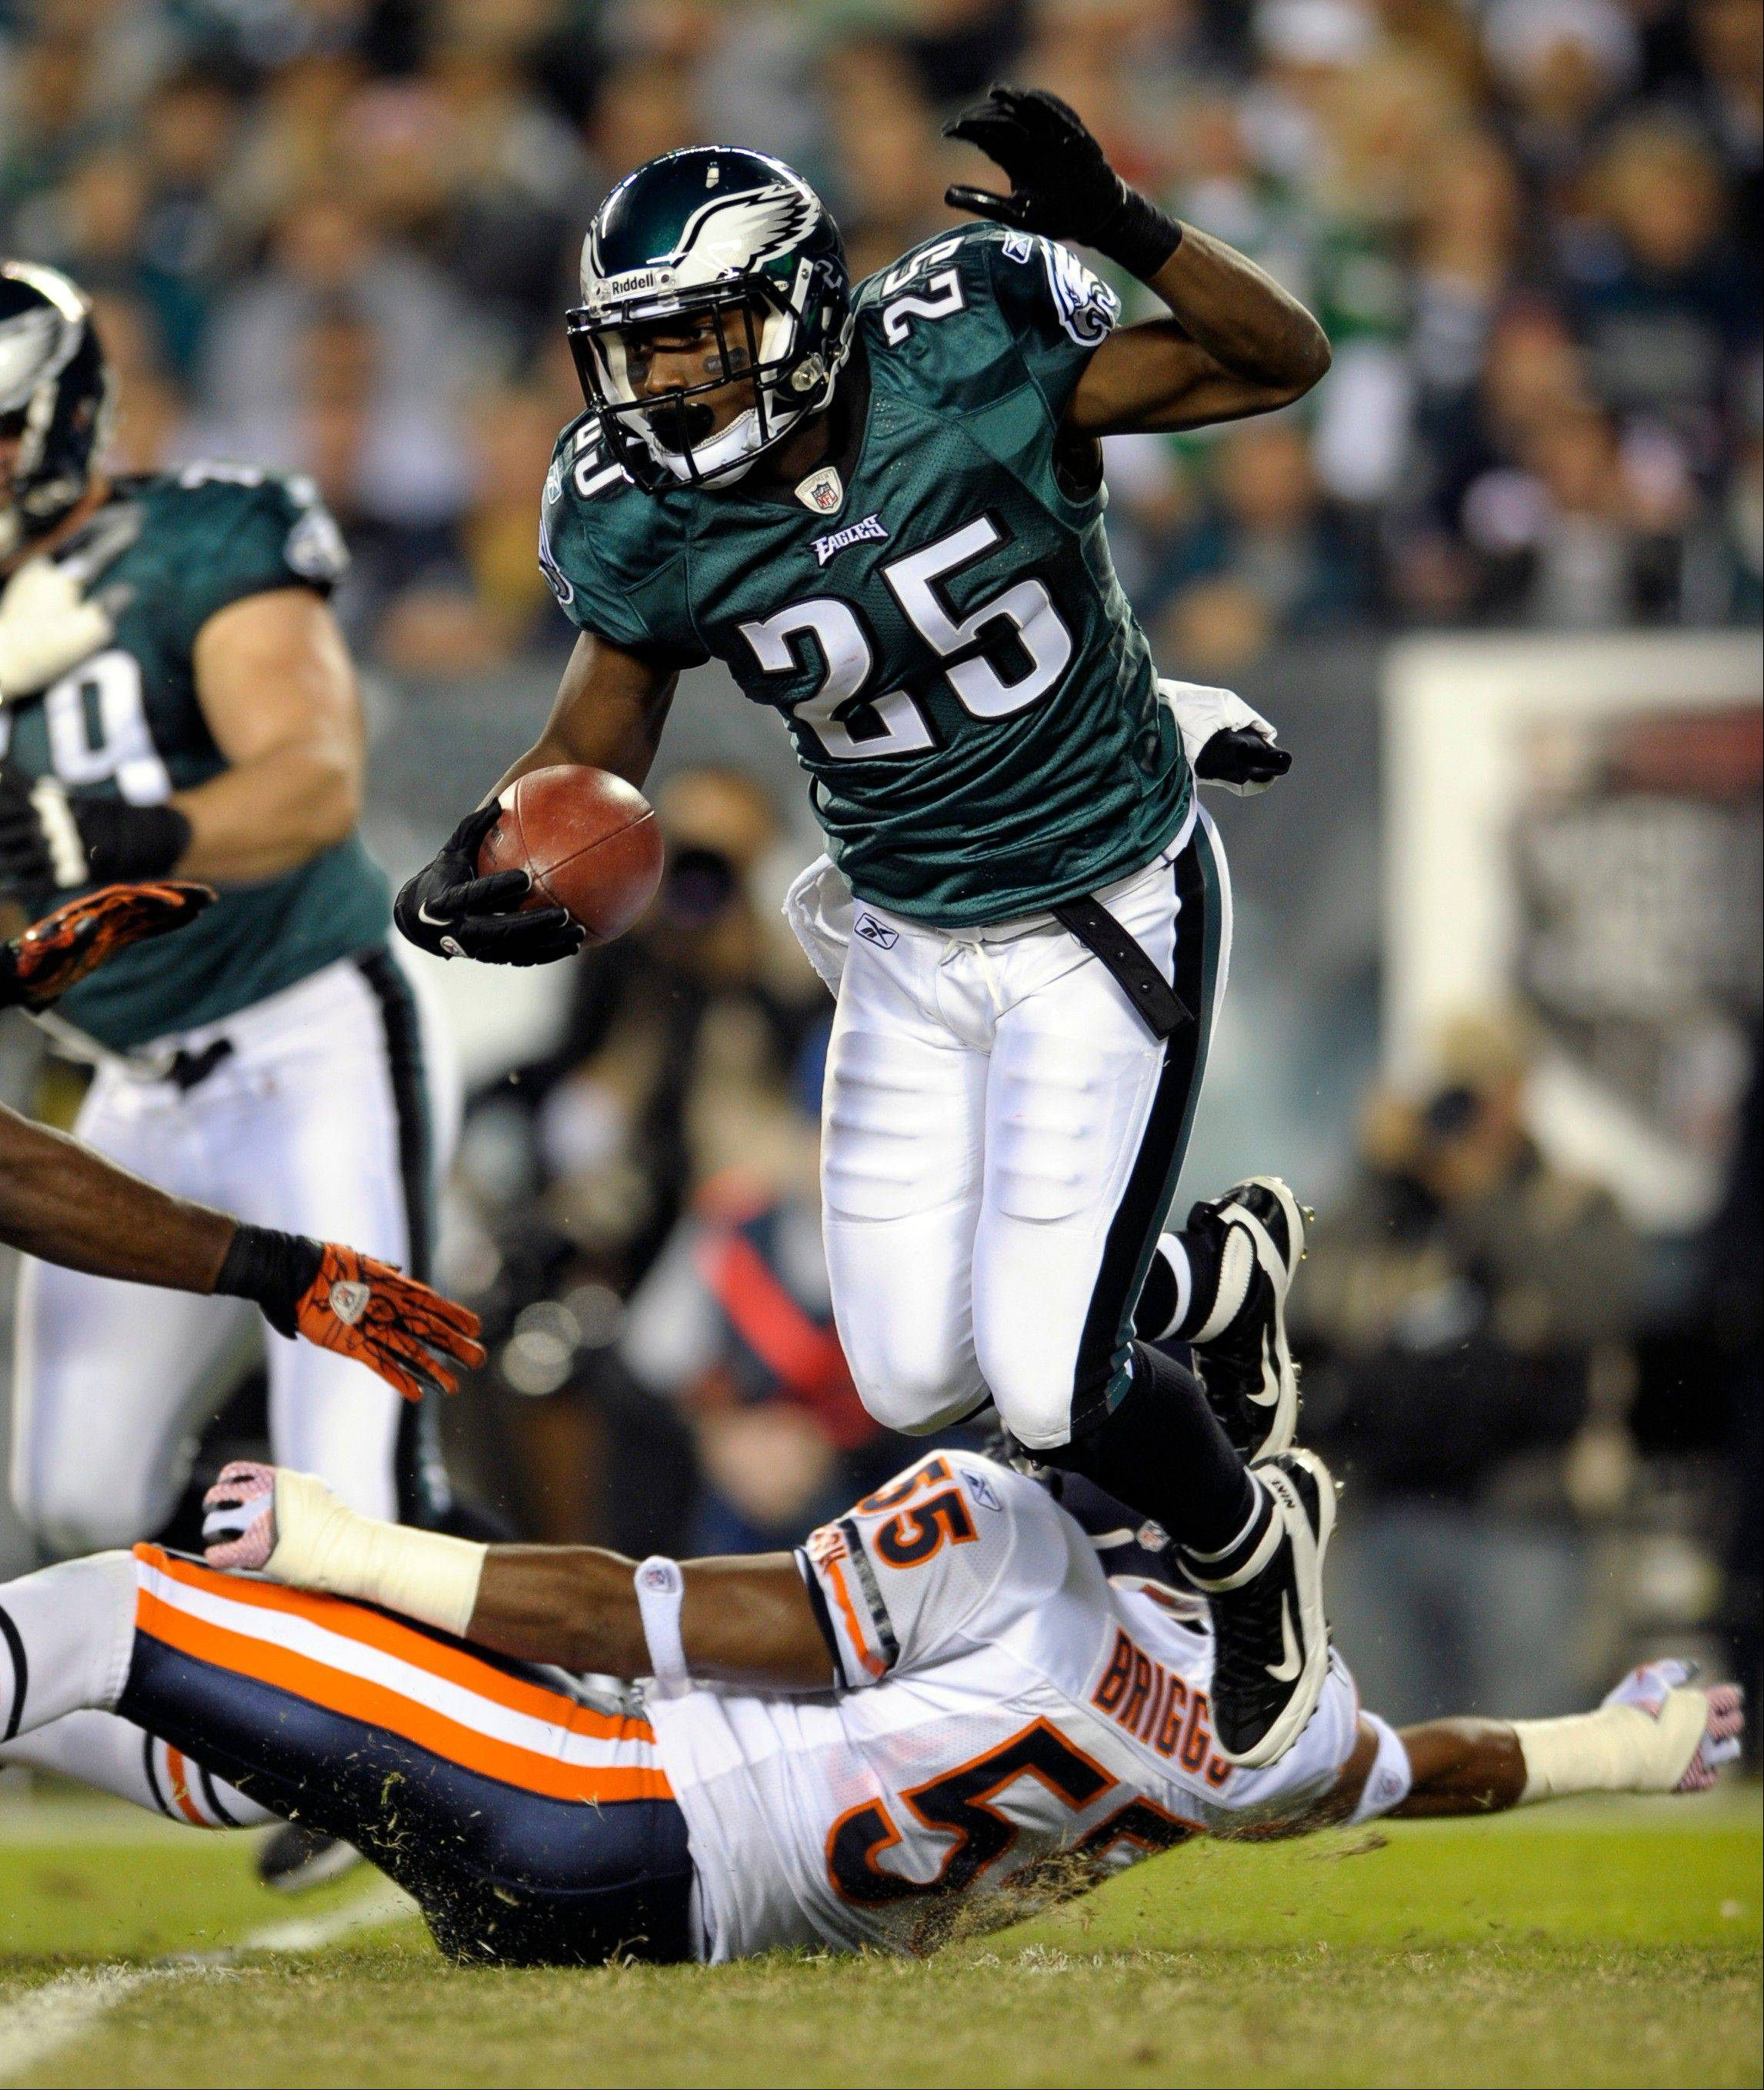 Eagles running back LeSean McCoy jumps over the Bears' Lance Briggs in a game in 2011. McCoy is ranked fifth among running backs for fantasy football purposes, according to John Dietz.